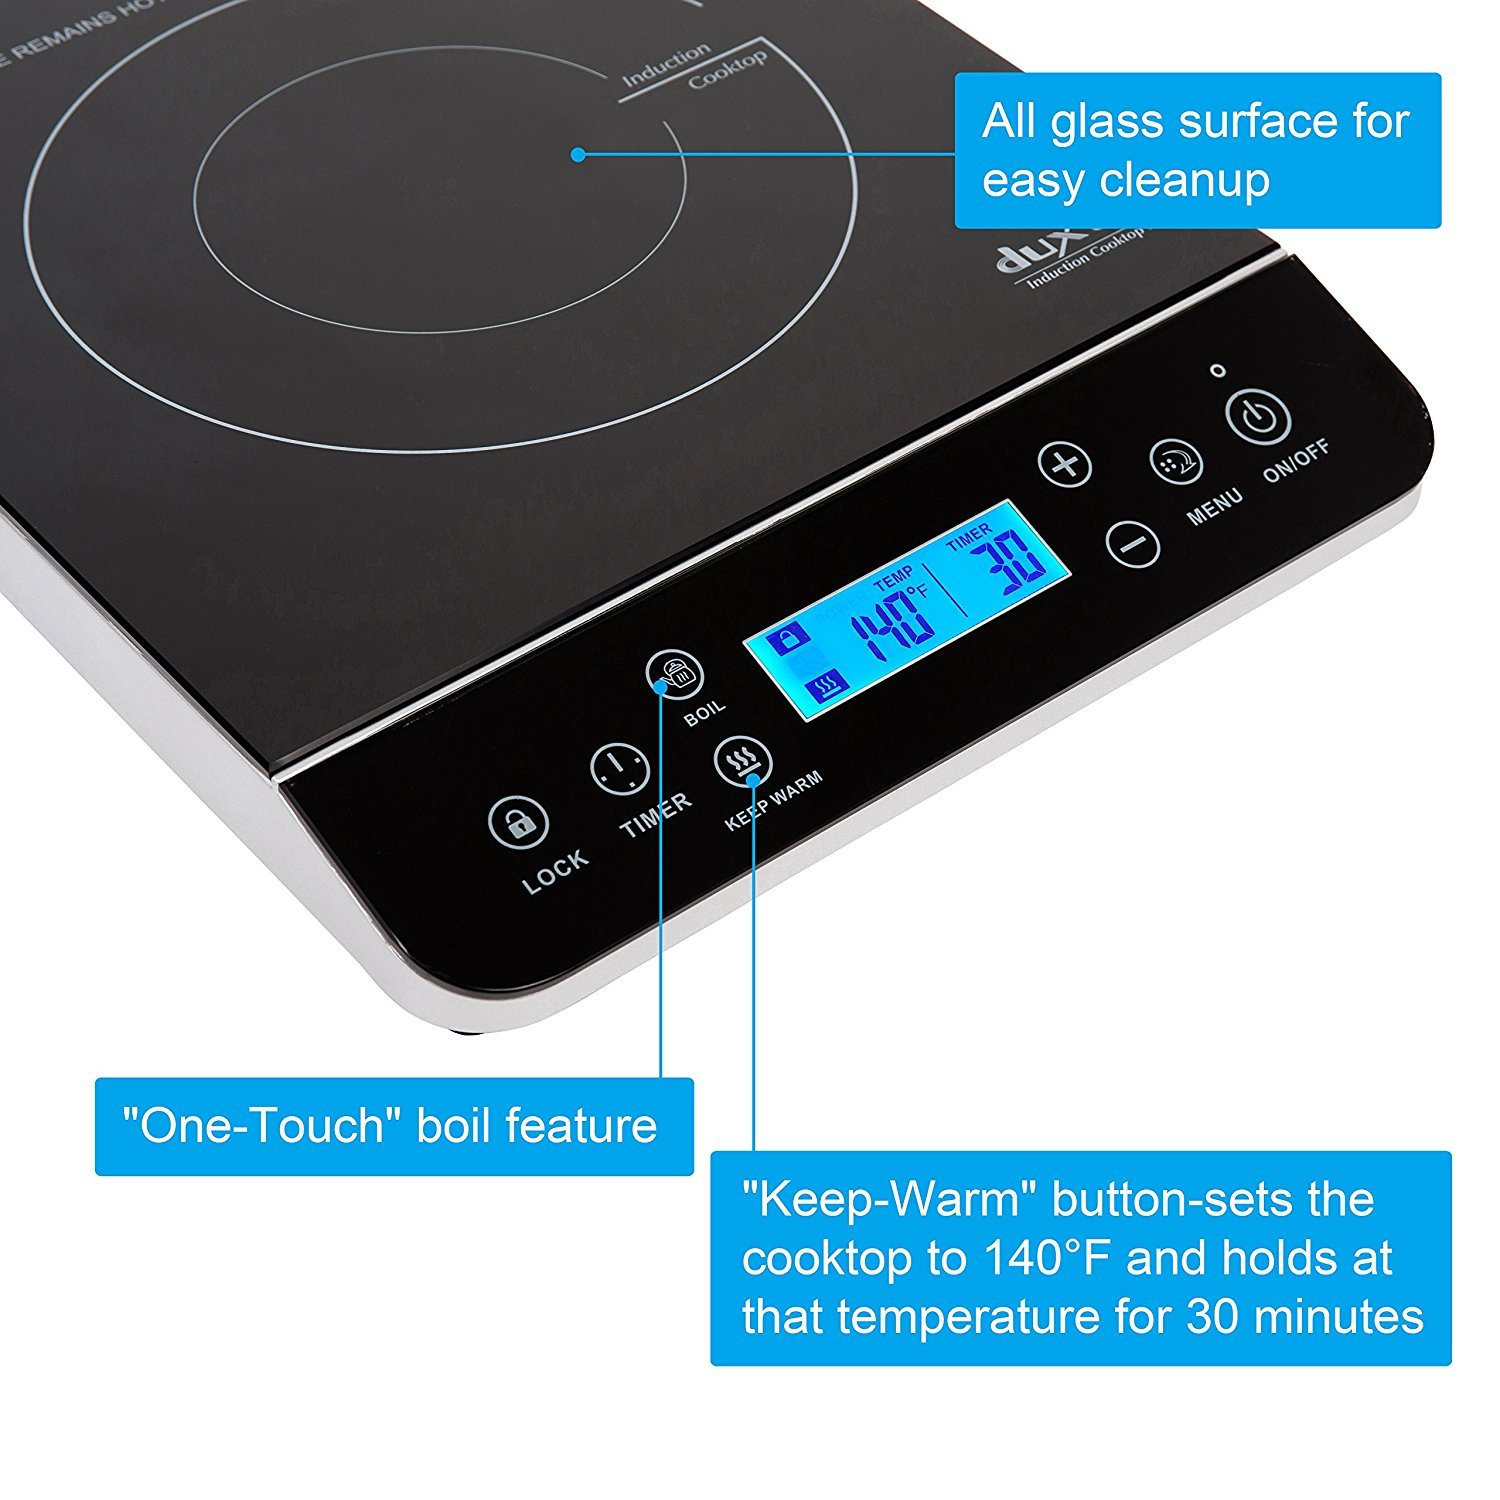 Duxtop induction cooktop 9600LSCP